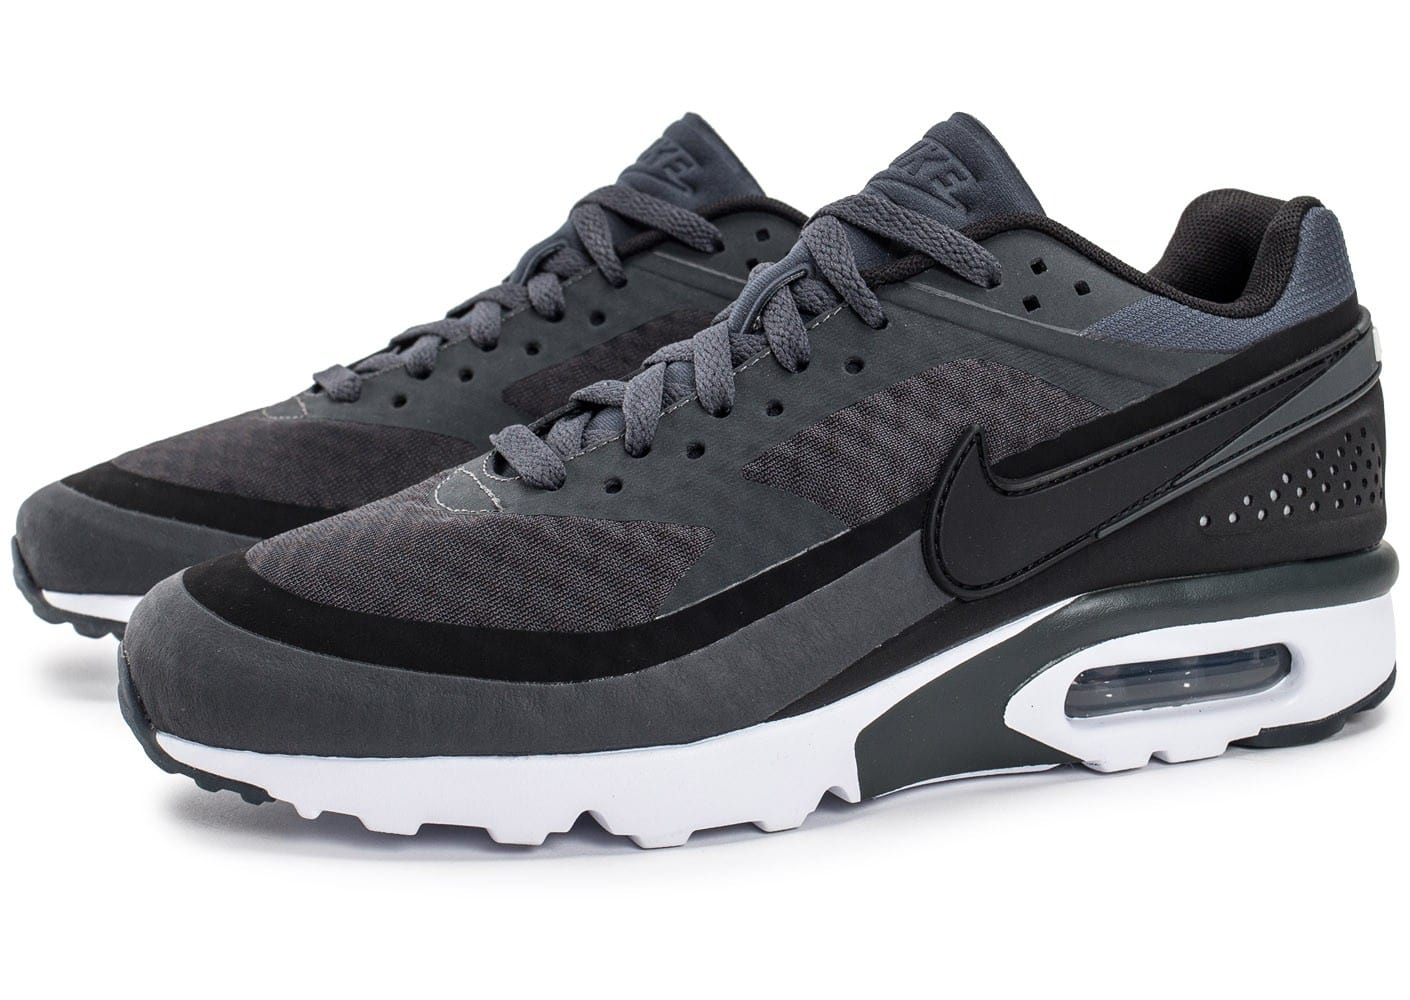 43 EU Chaussures Nike Air Max BW grises Fashion homme Geox Phyteam A Noir (Black